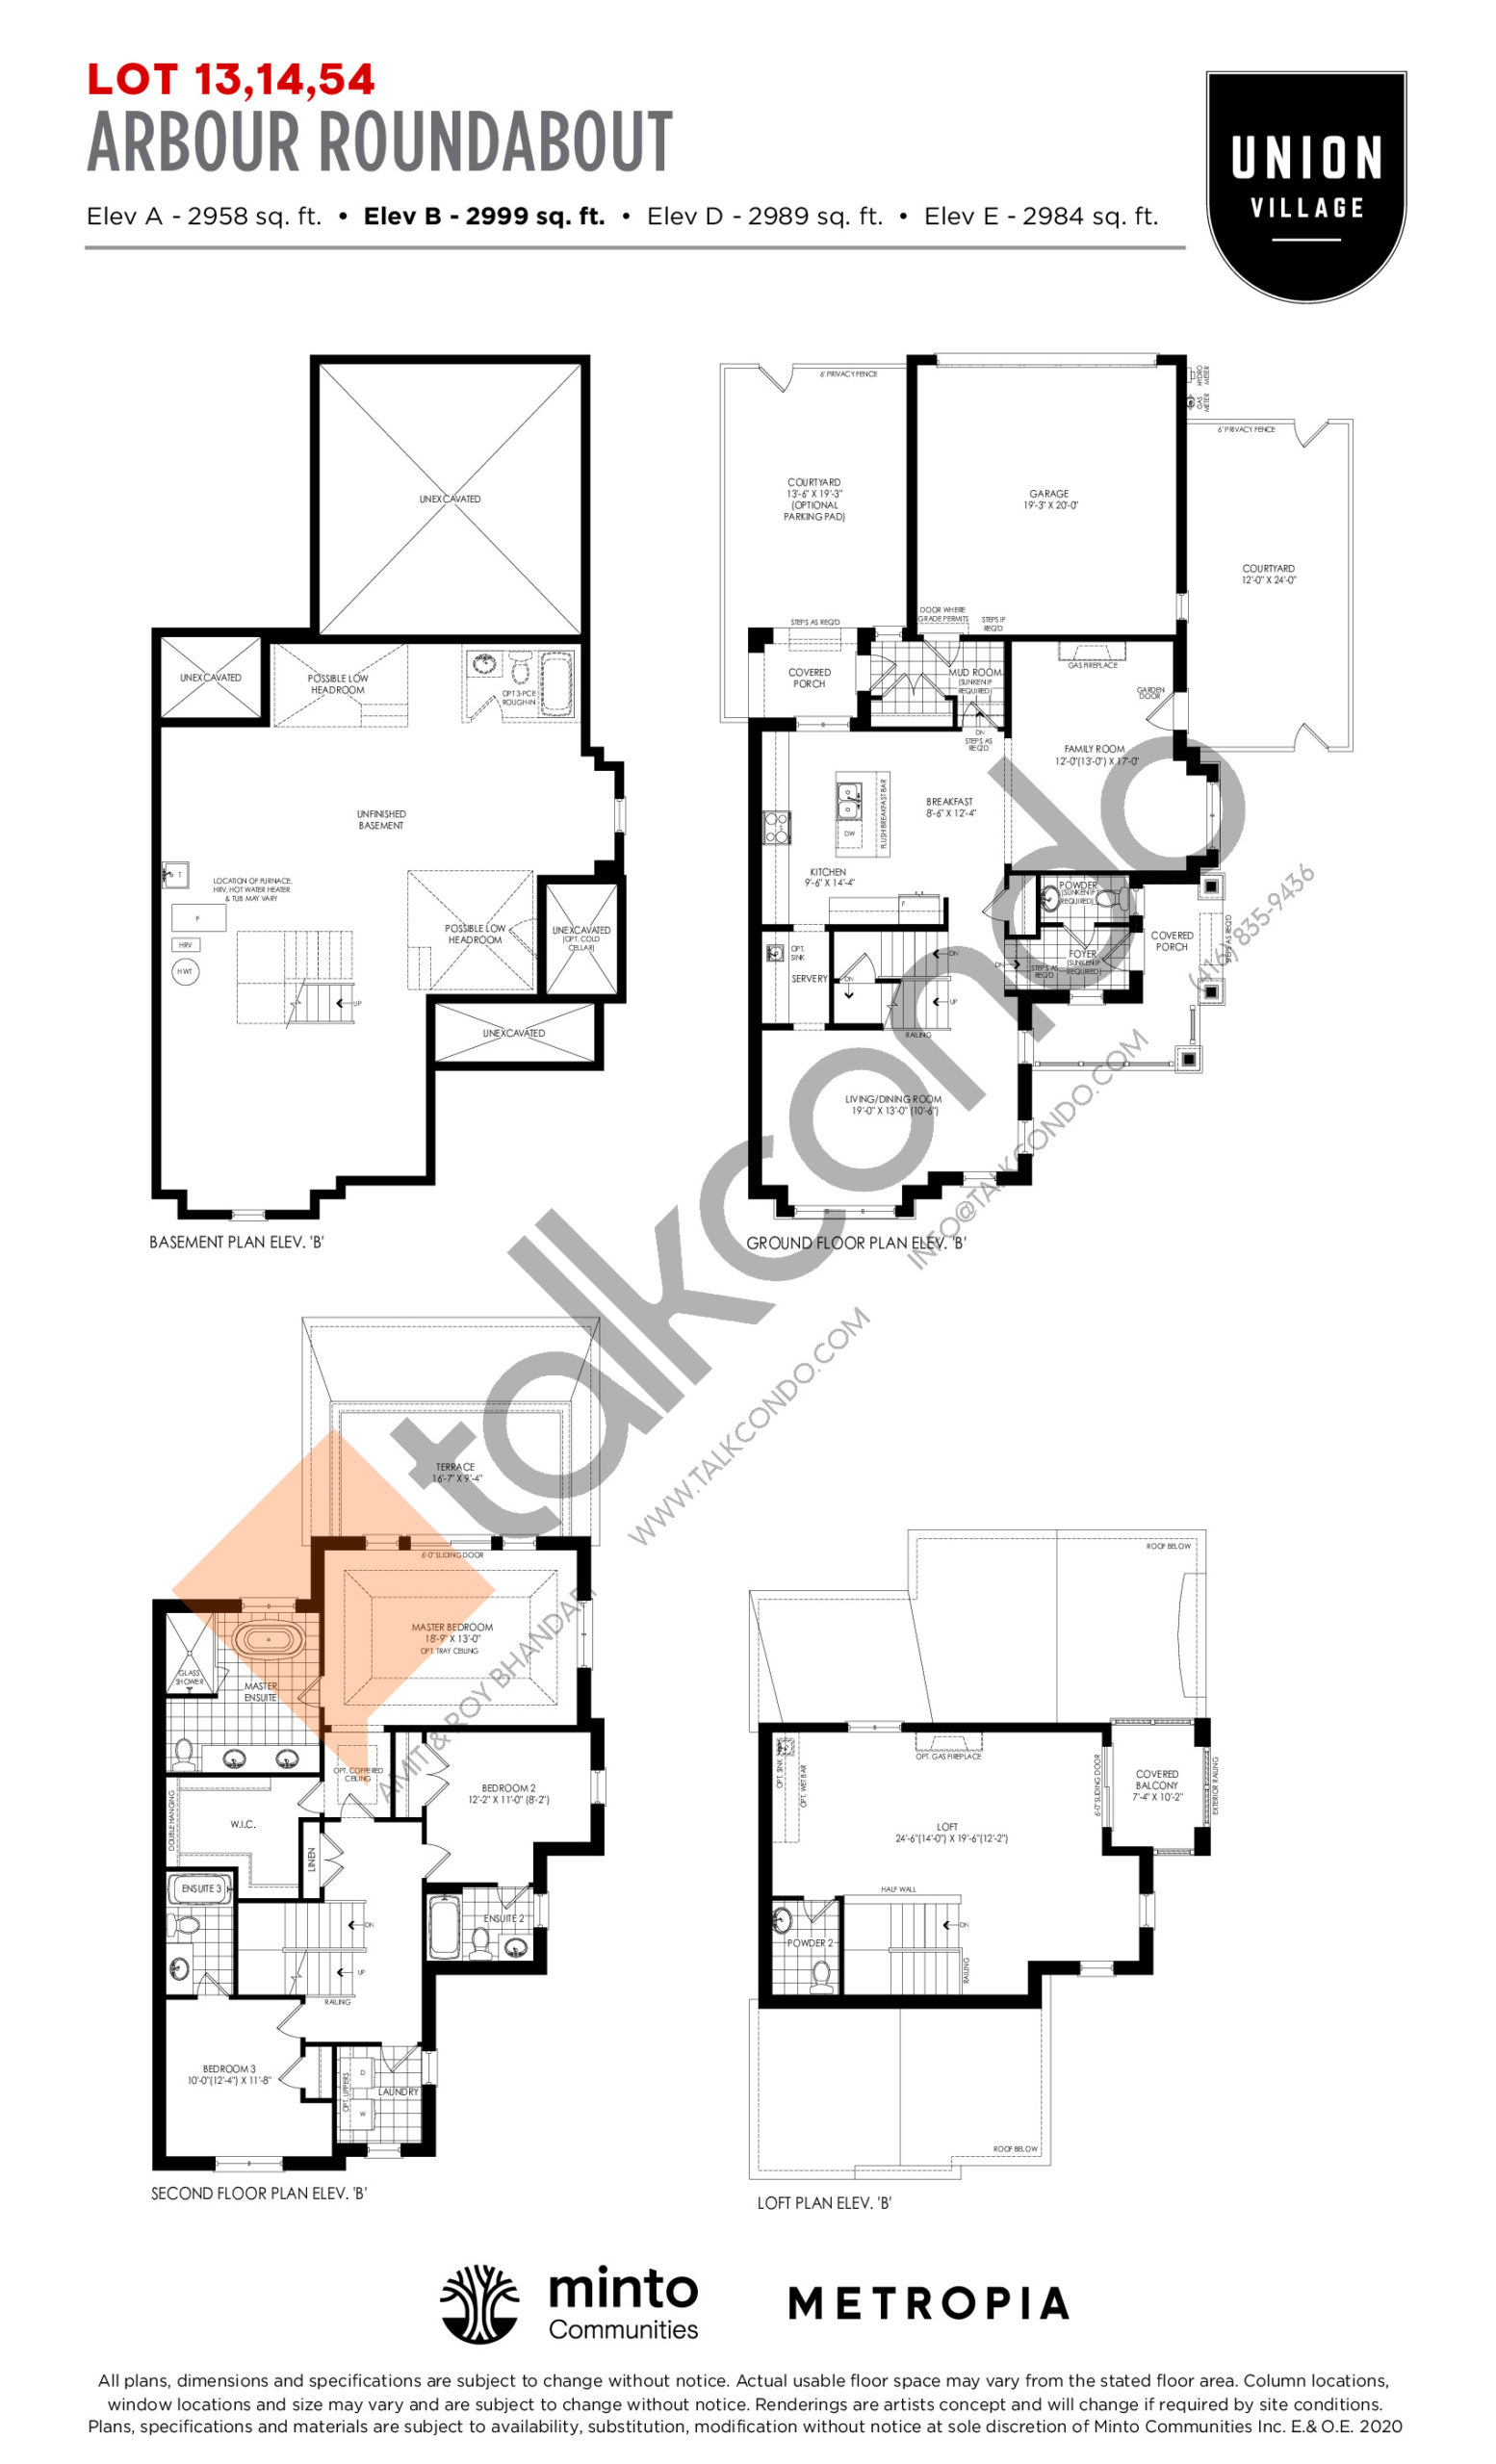 Arbour Roundabout Elev B - The Rosewood Collection Floor Plan at Union Village - 2999 sq.ft